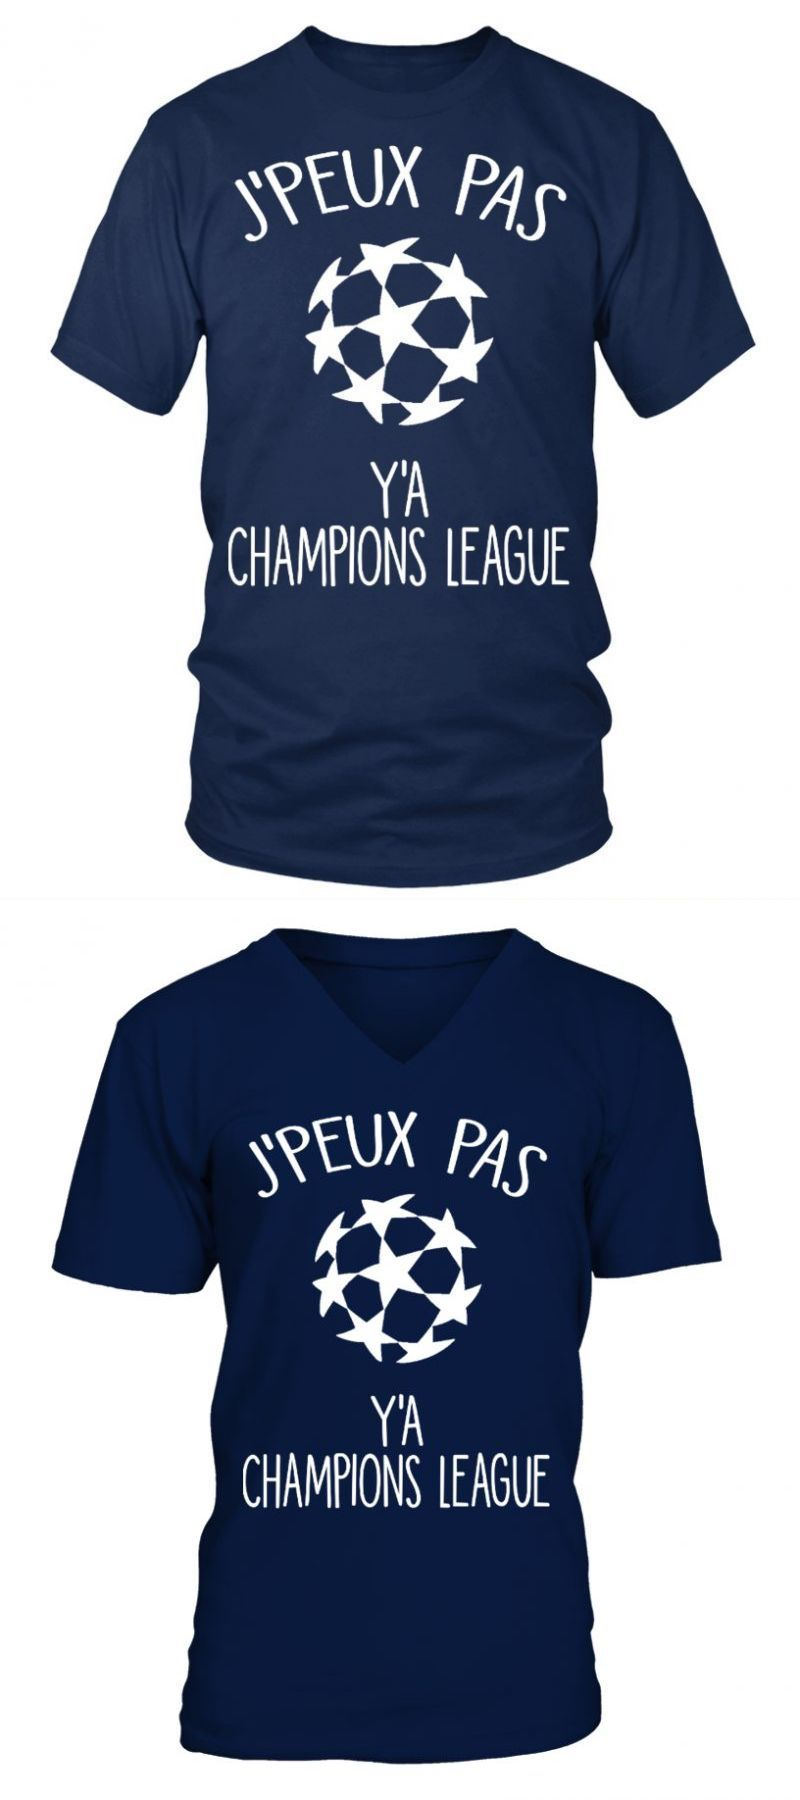 Byu Volleyball T Shirt Je Peux Pas Y A Champions League T Shirt Design For Volleyball Team Byu Volleyball Shirt Je Peux Pas Y A C Volleyball Mens